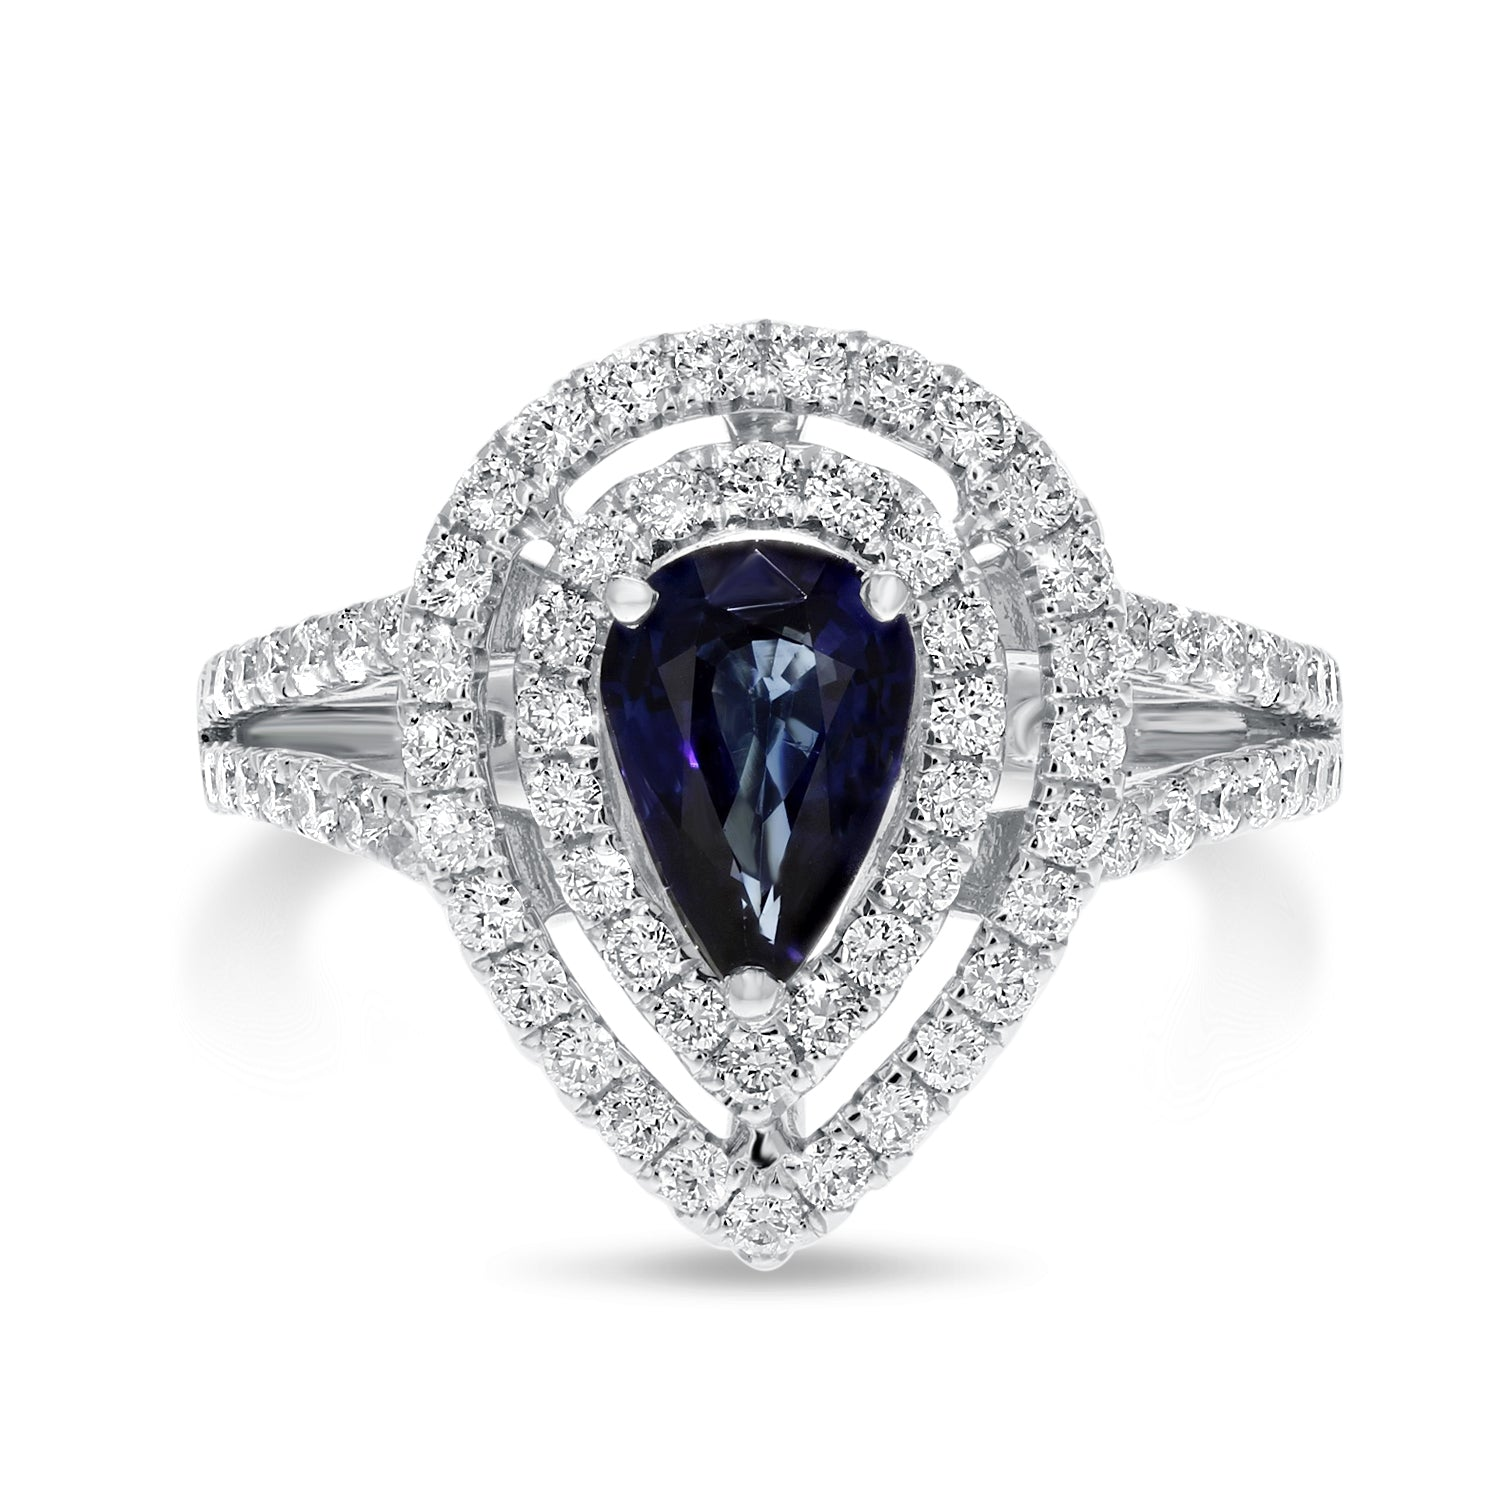 18K White Gold Diamond and Gemstone Ring, 1.82 Carats